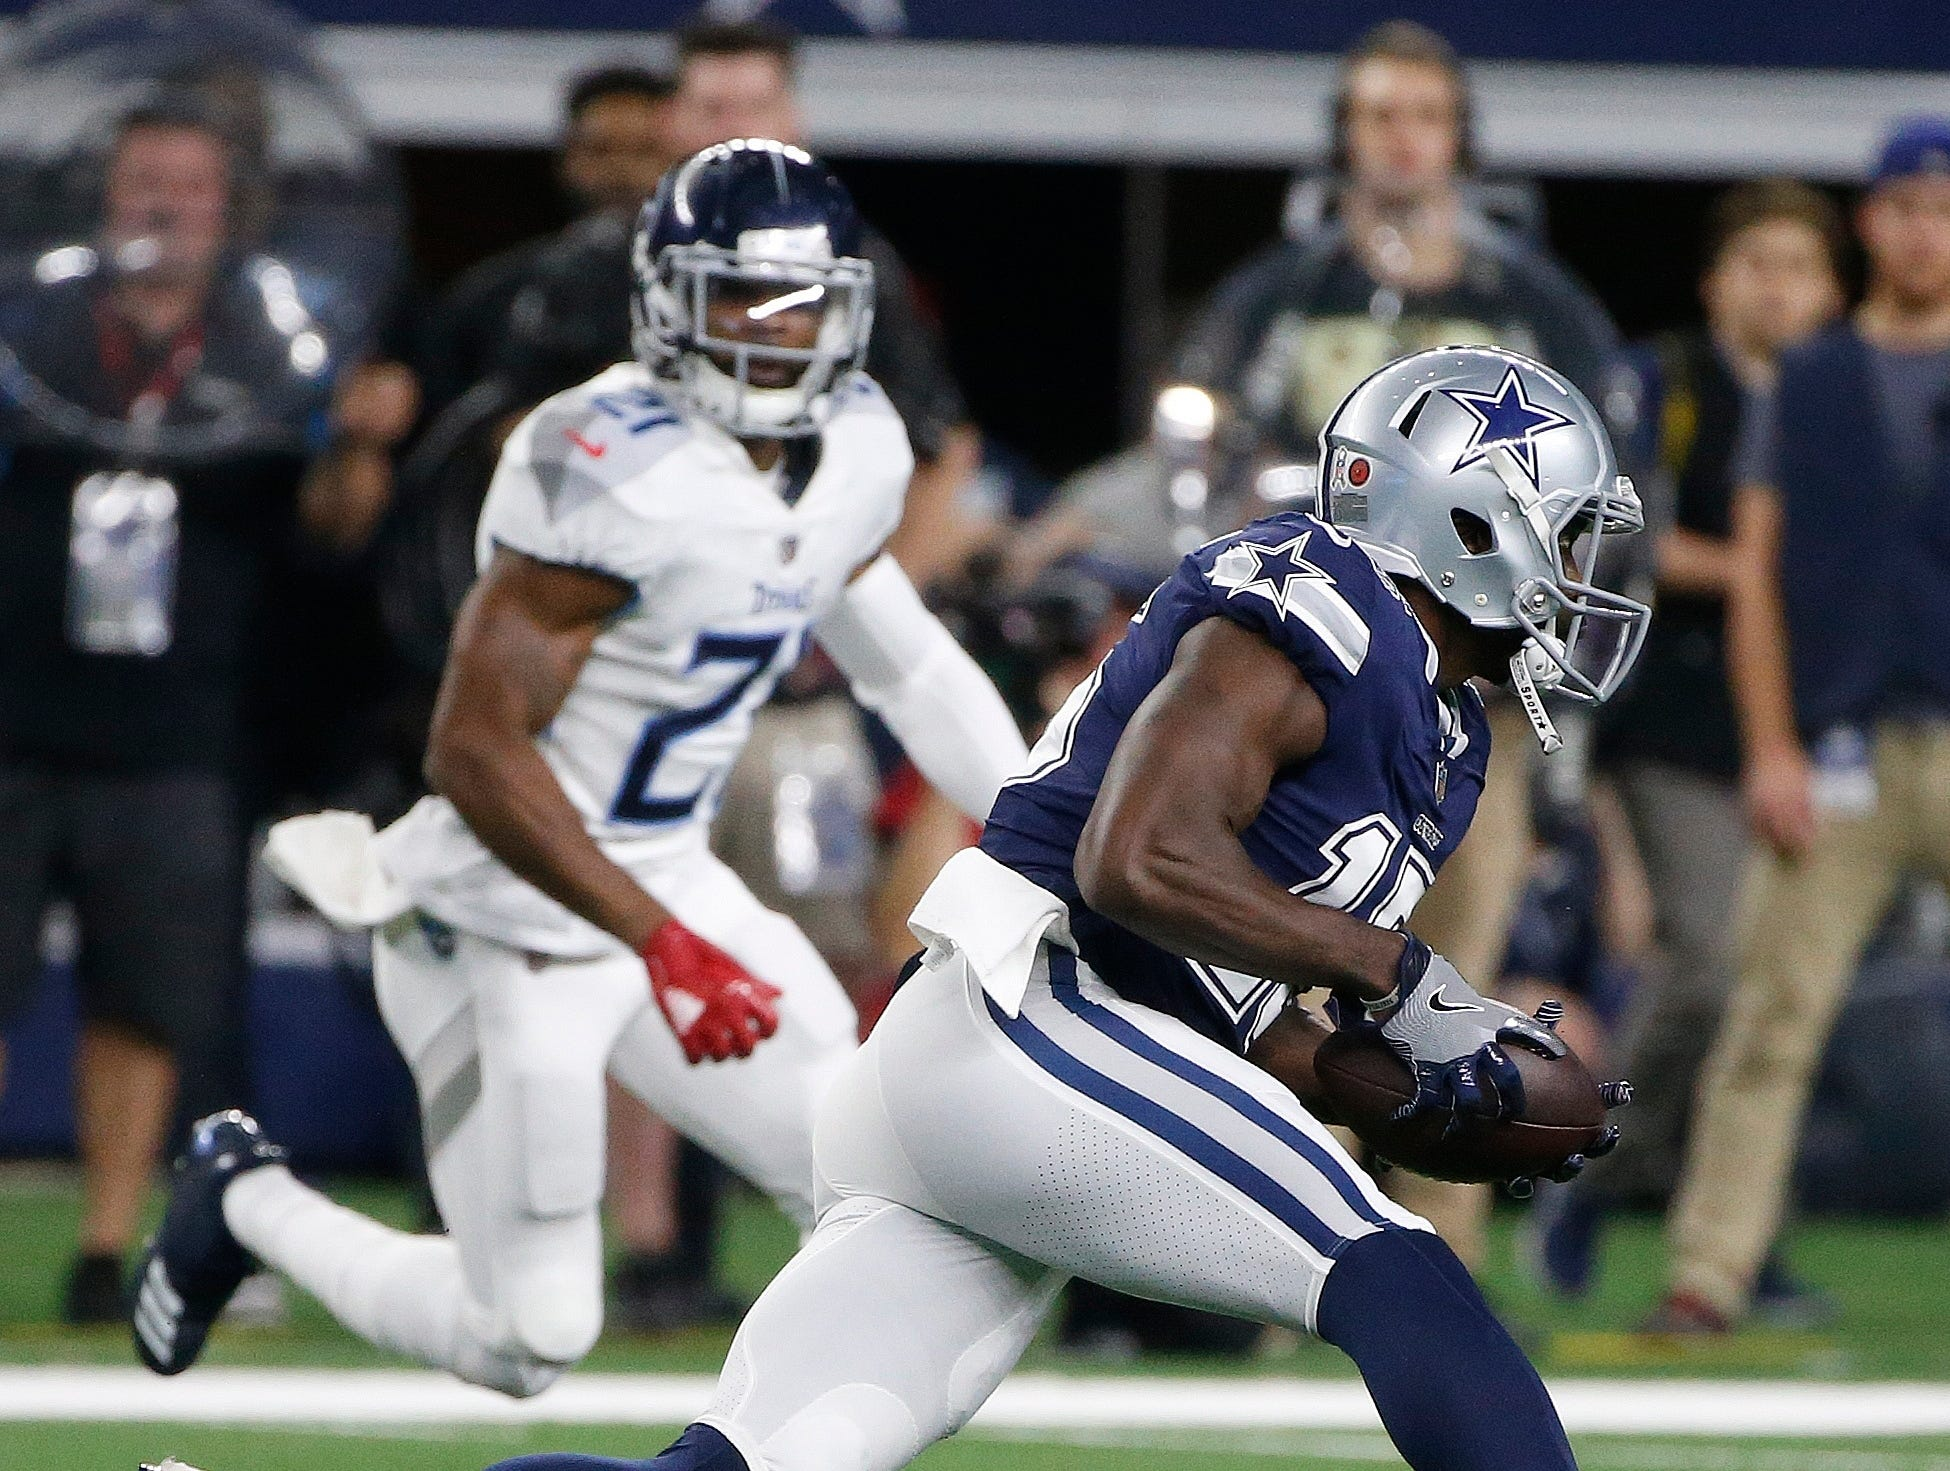 Dallas Cowboys wide receiver Deonte Thompson (15) runs against the Tennessee Titans during the first half of an NFL football game, Monday, Nov. 5, 2018, in Arlington, Texas.